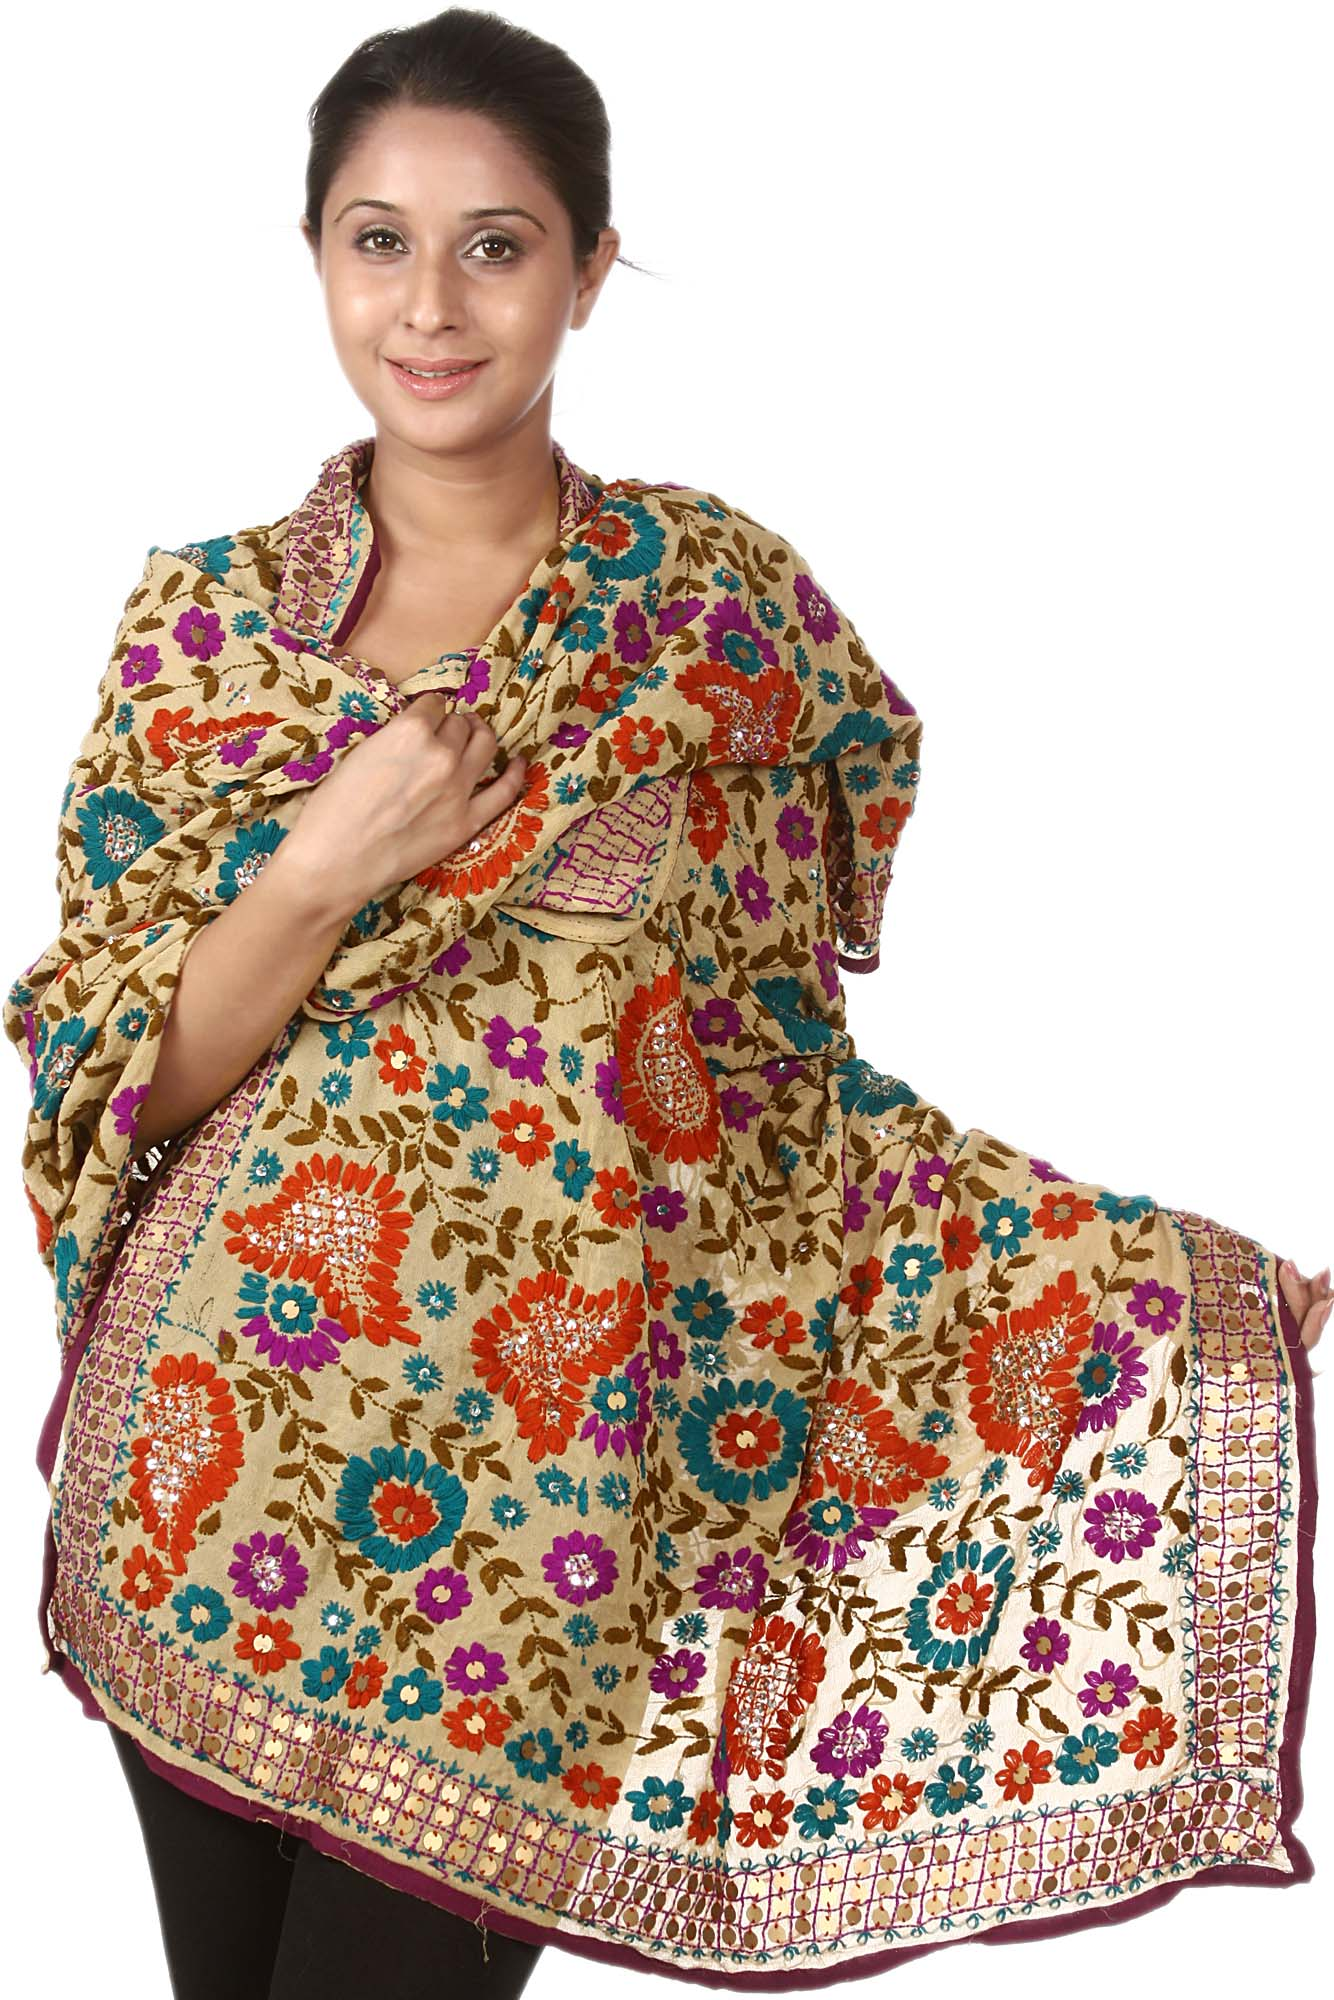 Beige phulkari dupatta from punjab with ari embroidery by hand